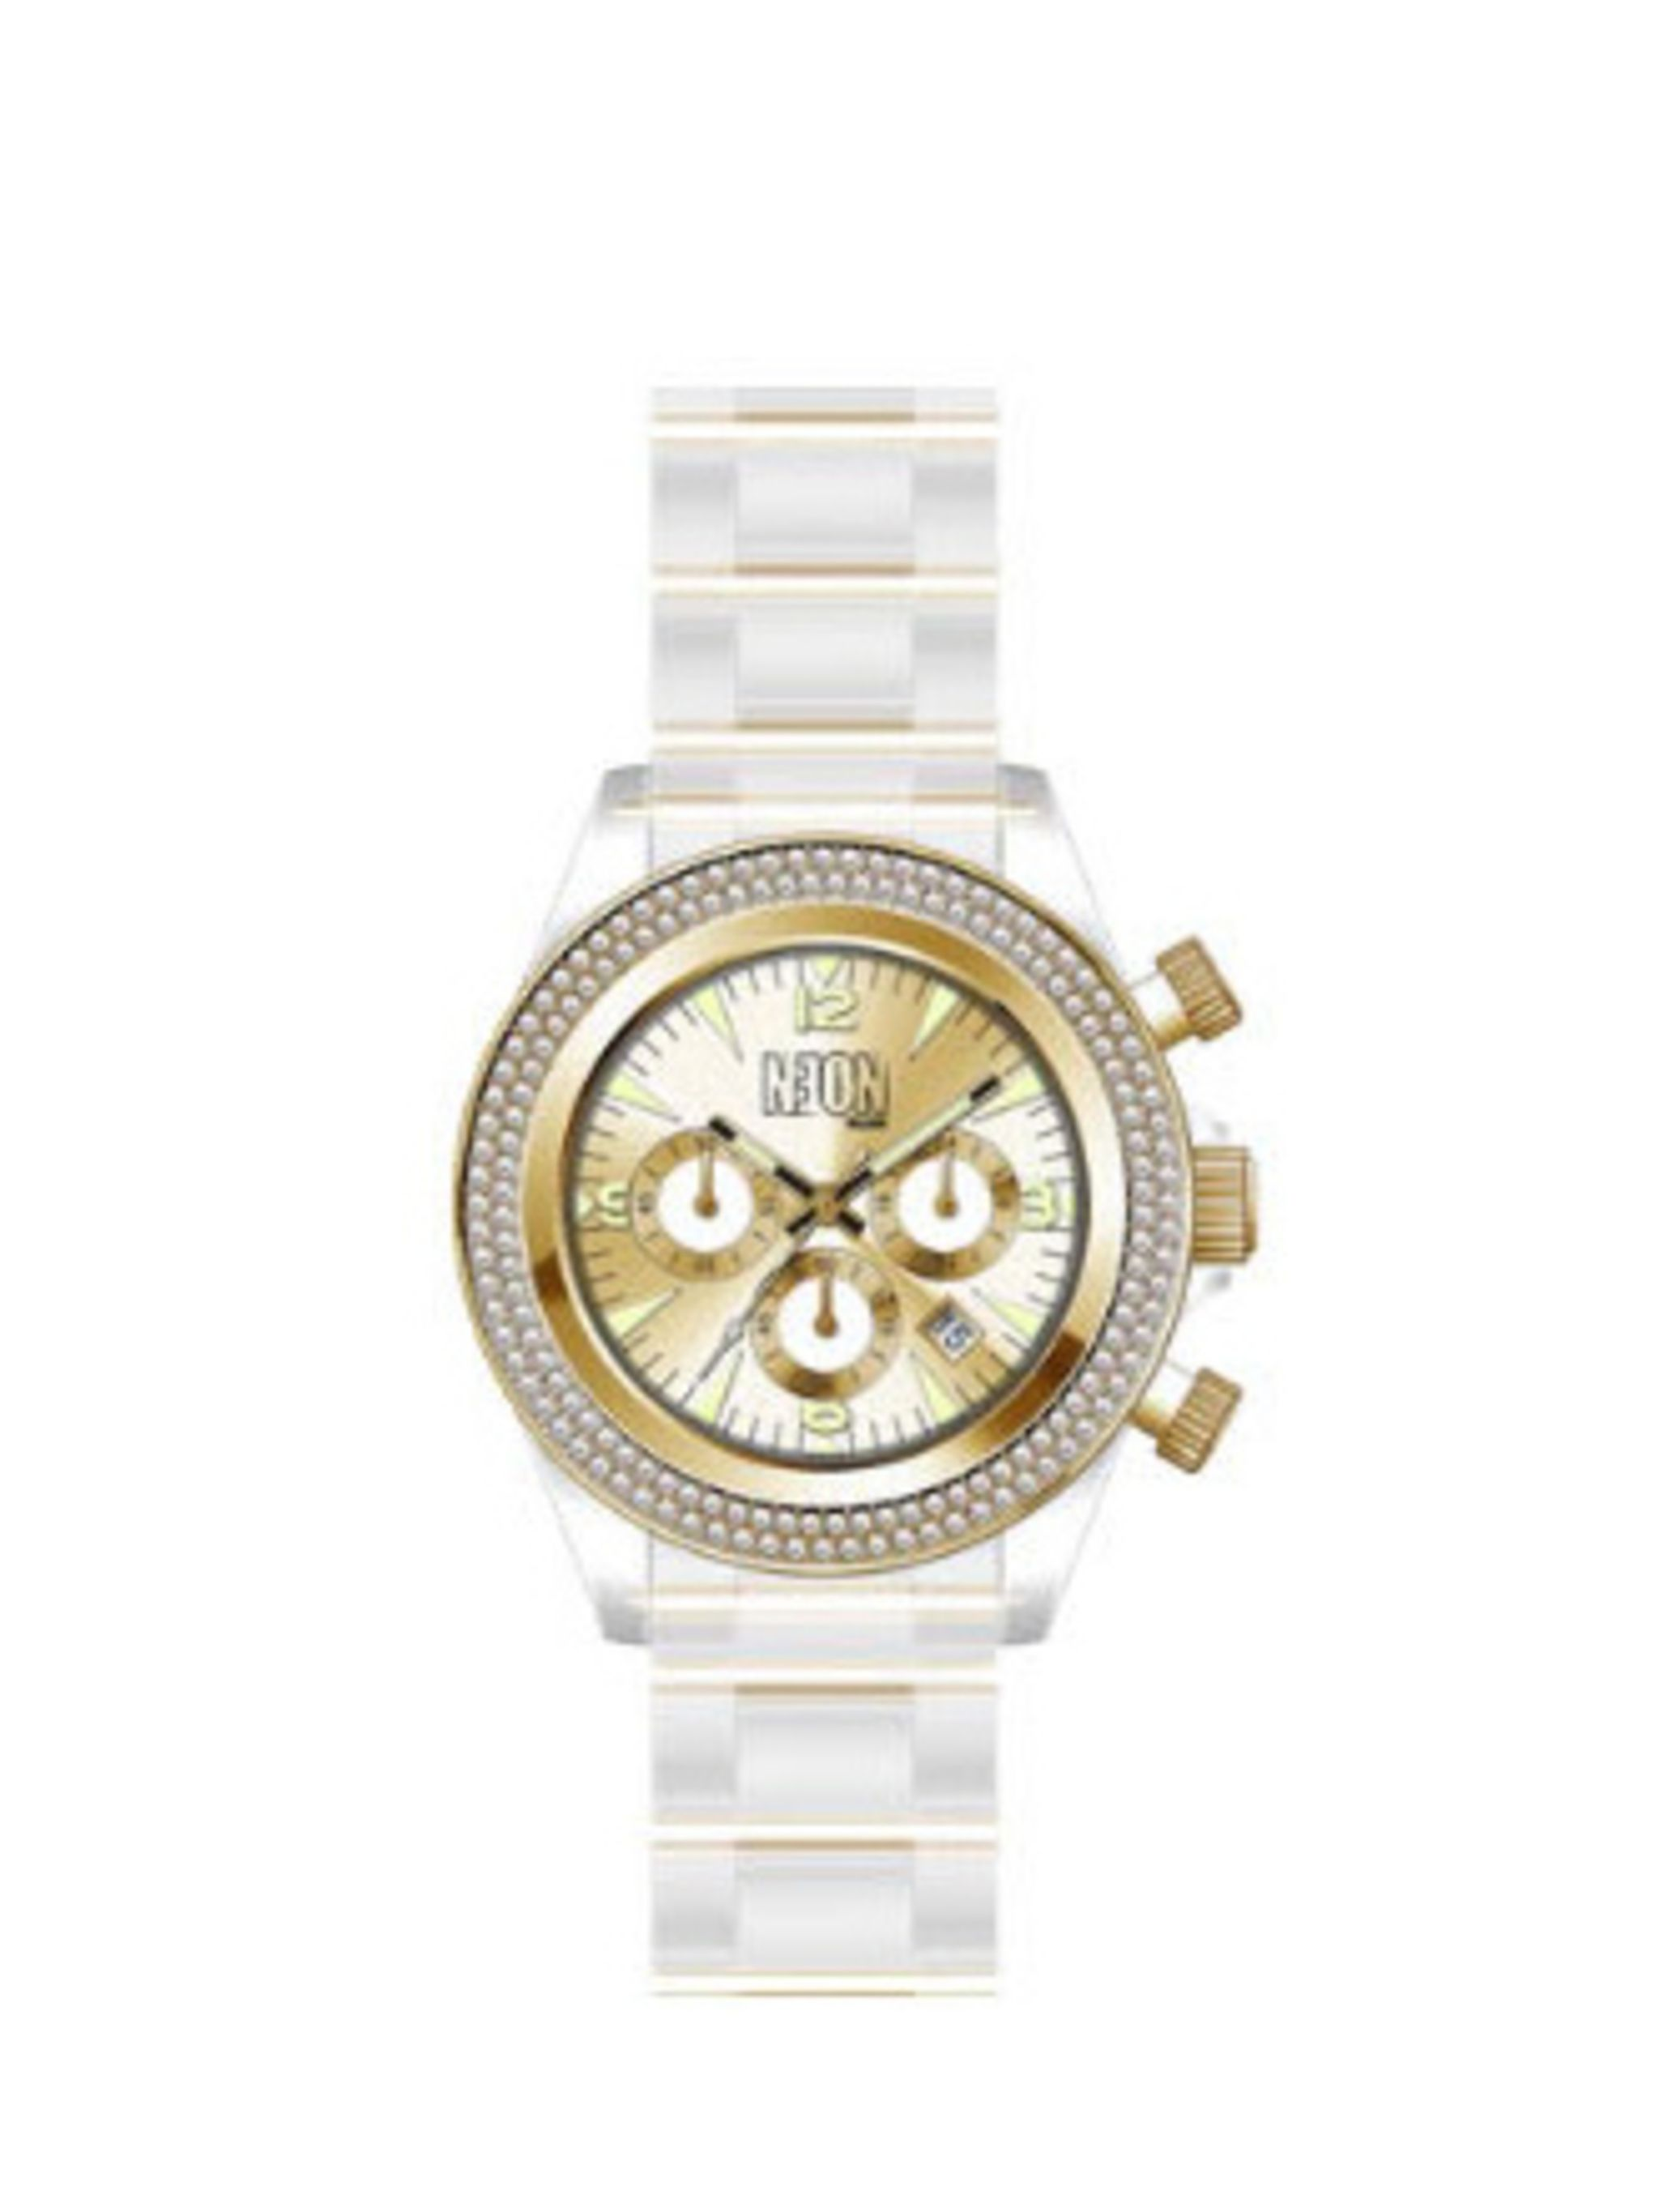 "<p>The trend for sporty watches is here to stay, so snap up this oh-so-chic clear acrylic and gold detail watch. It will make a great stocking filler…for you.</p><p>Watch, £99 by Neon Dilligaf at <a href=""http://www.bunnyhug.co.uk/fashionshop/gbu0-prodsho"